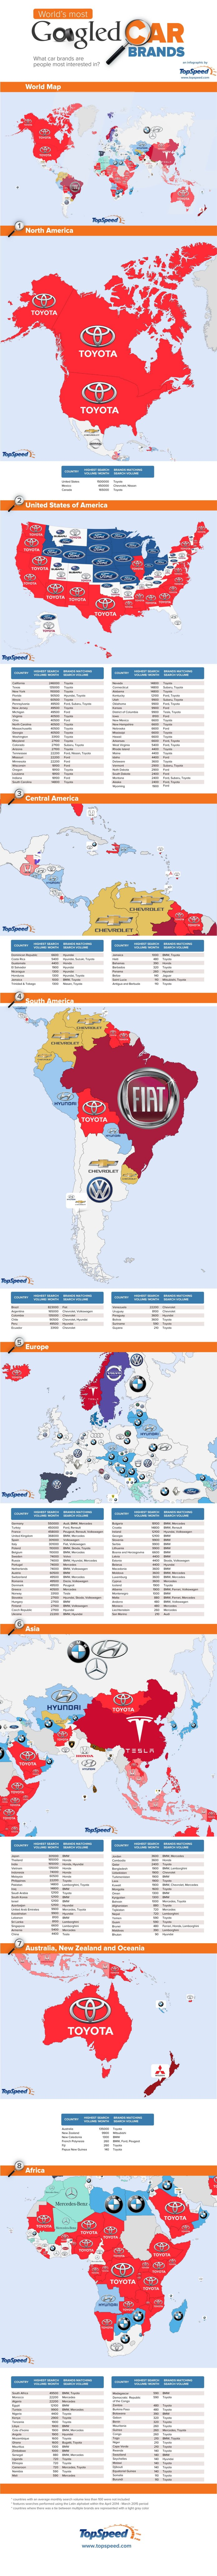 Infographic The World's Most Searched Car Brands (12)